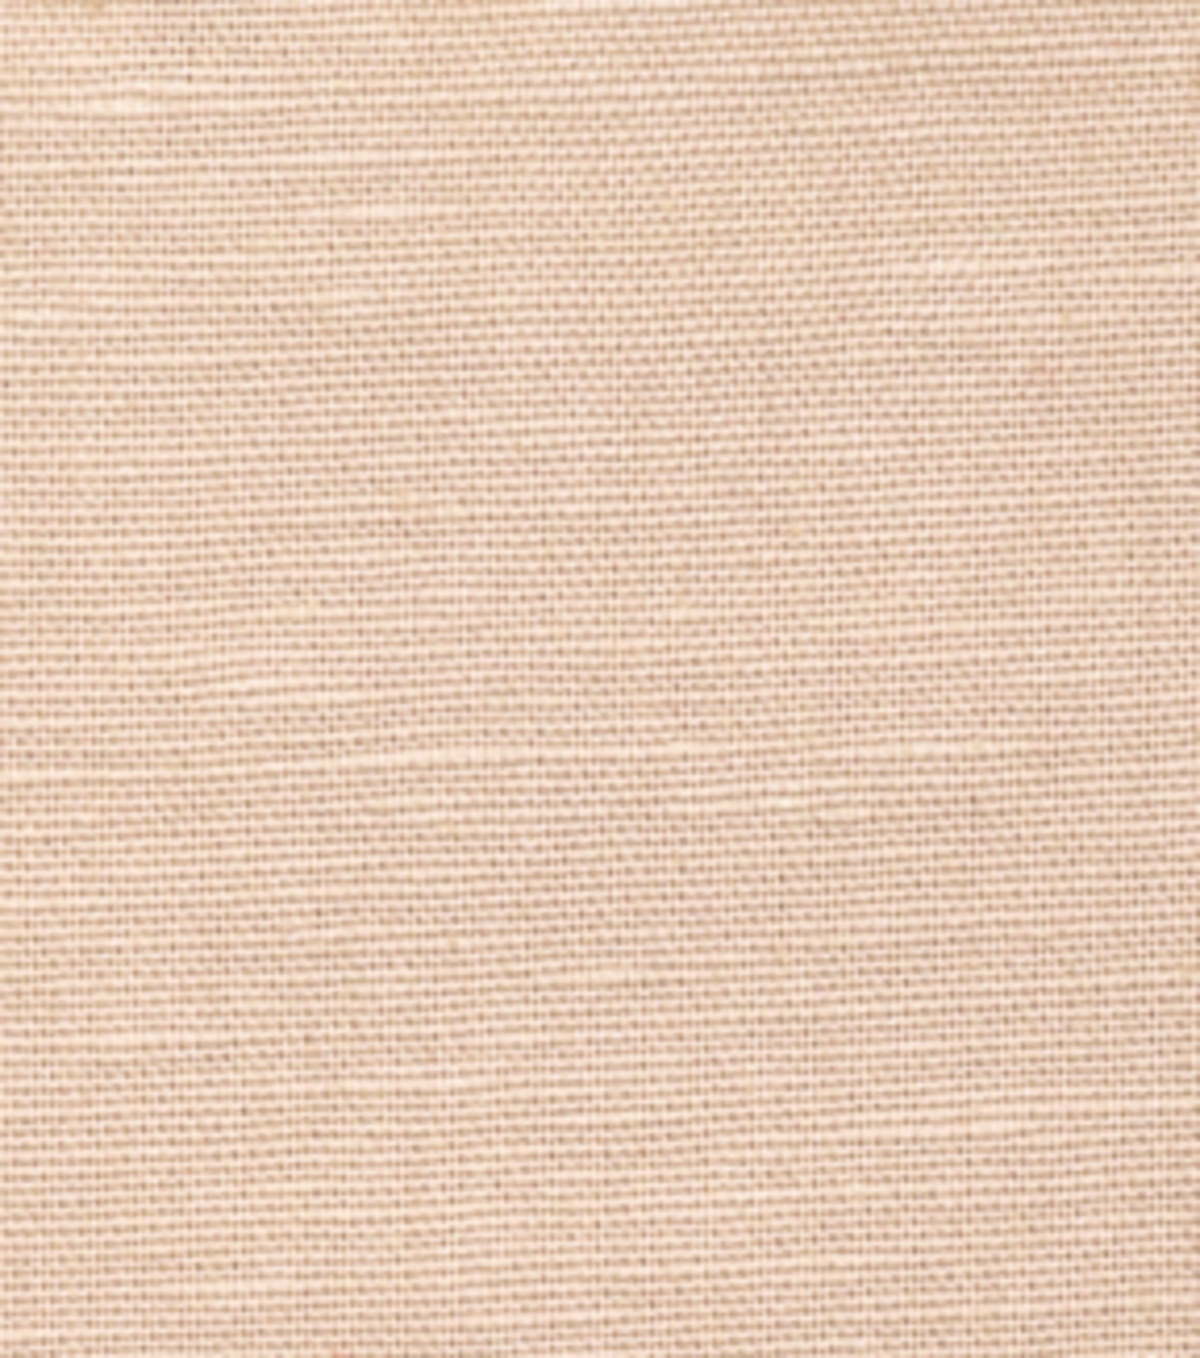 Home Decor 8\u0022x8\u0022 Fabric Swatch-Signature Series Sonoma Linen-Cotton Toast